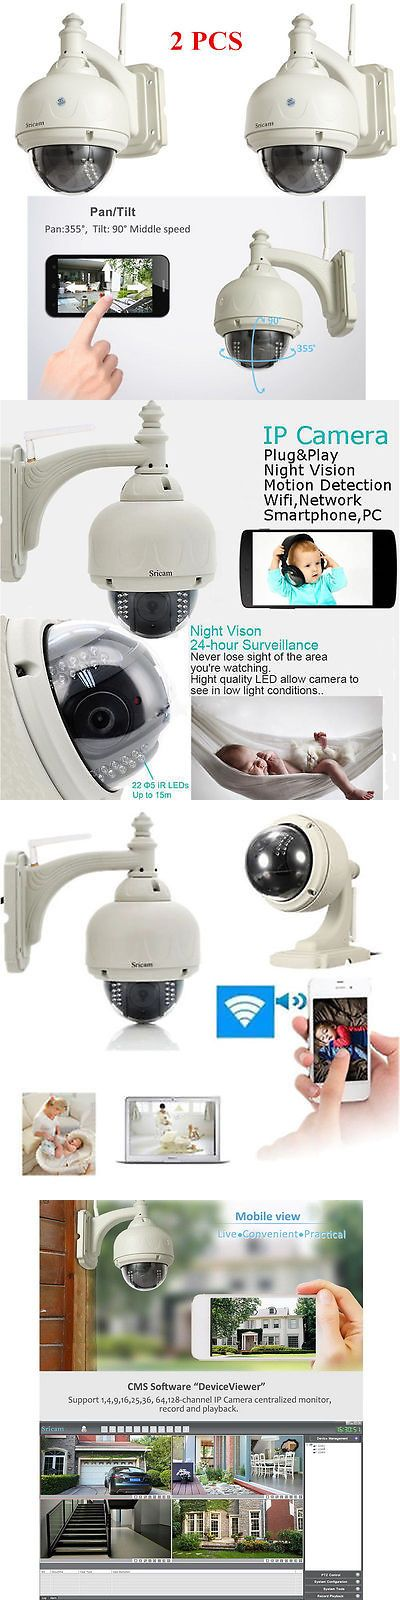 Security Cameras: 2Pcs Wireless Ip Camera Pt Dome Ir Night Vision Wifi Ir-Cut Outdoor Security Cam -> BUY IT NOW ONLY: $118.95 on eBay!